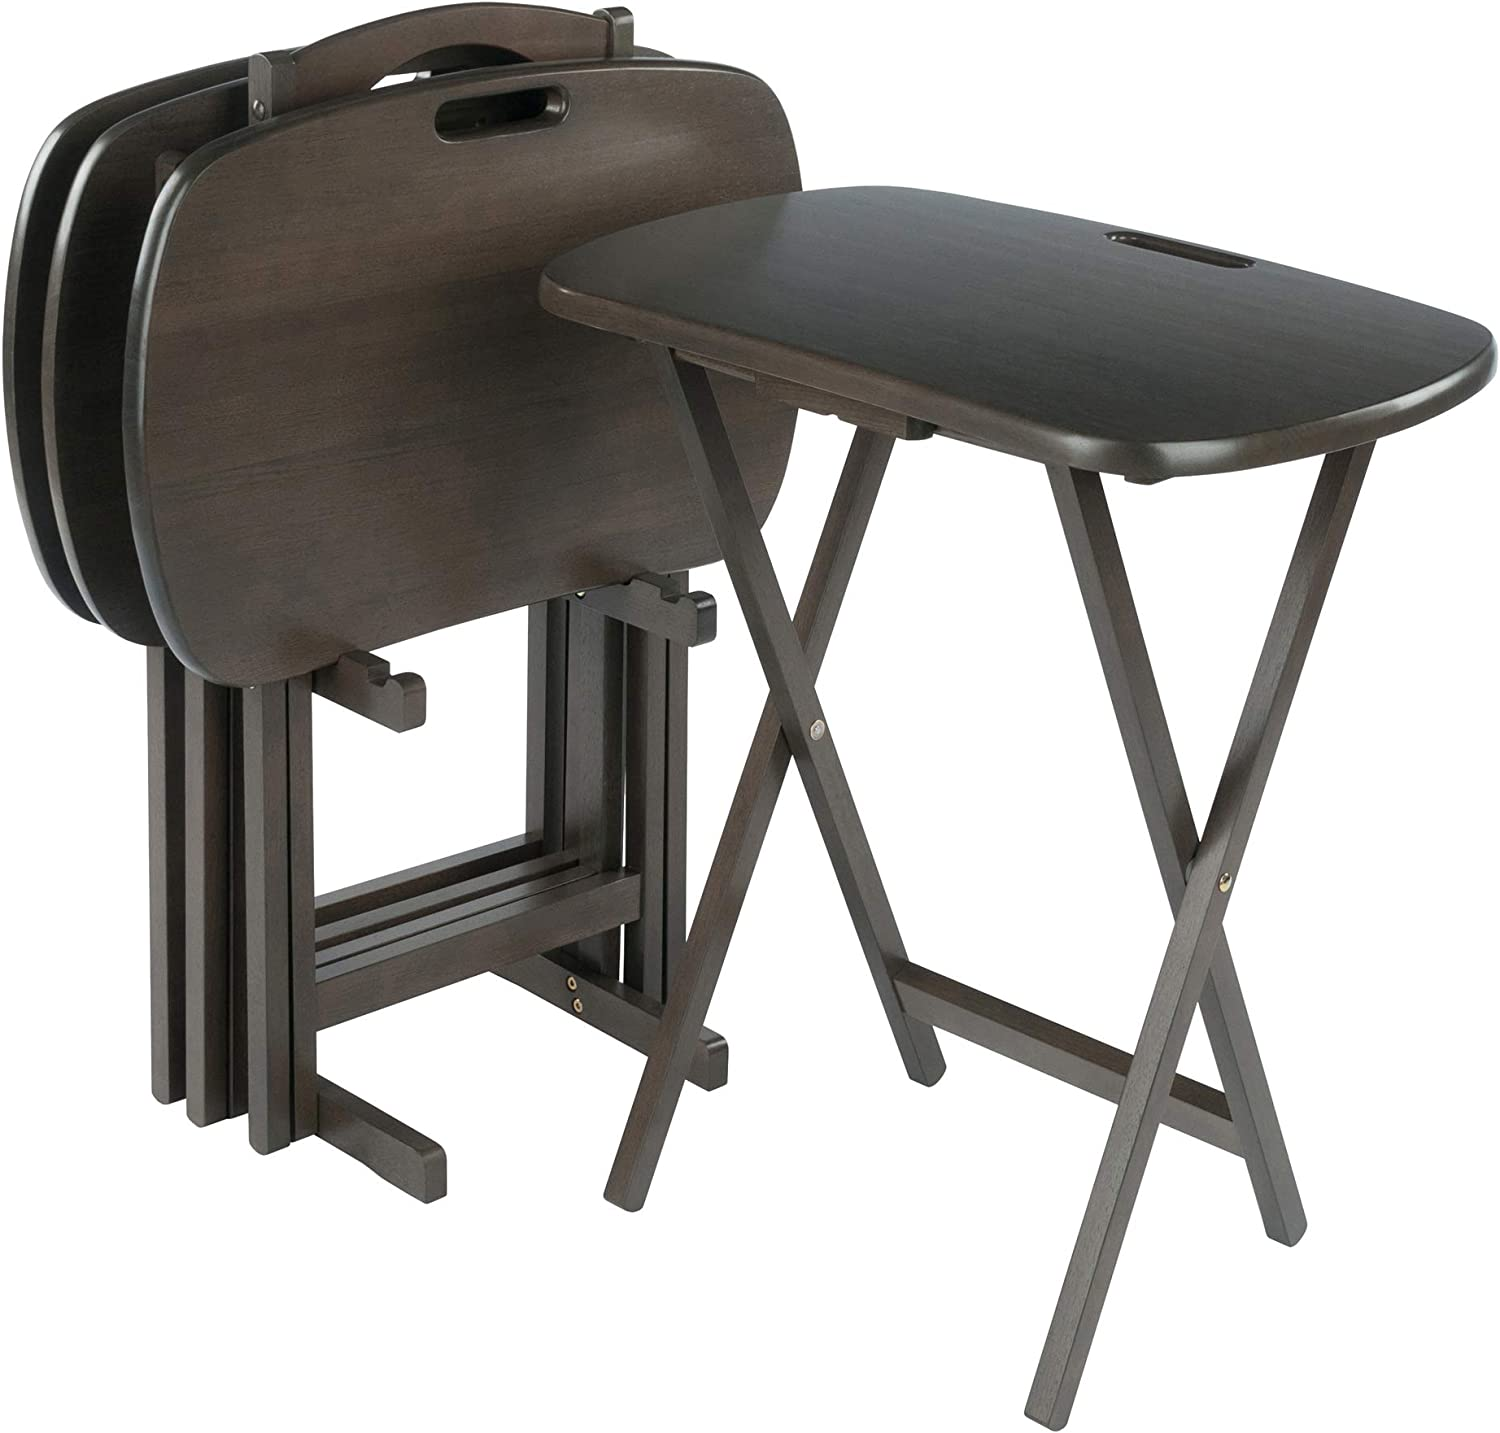 Winsome Wood Snack Tables, Oyster Gray